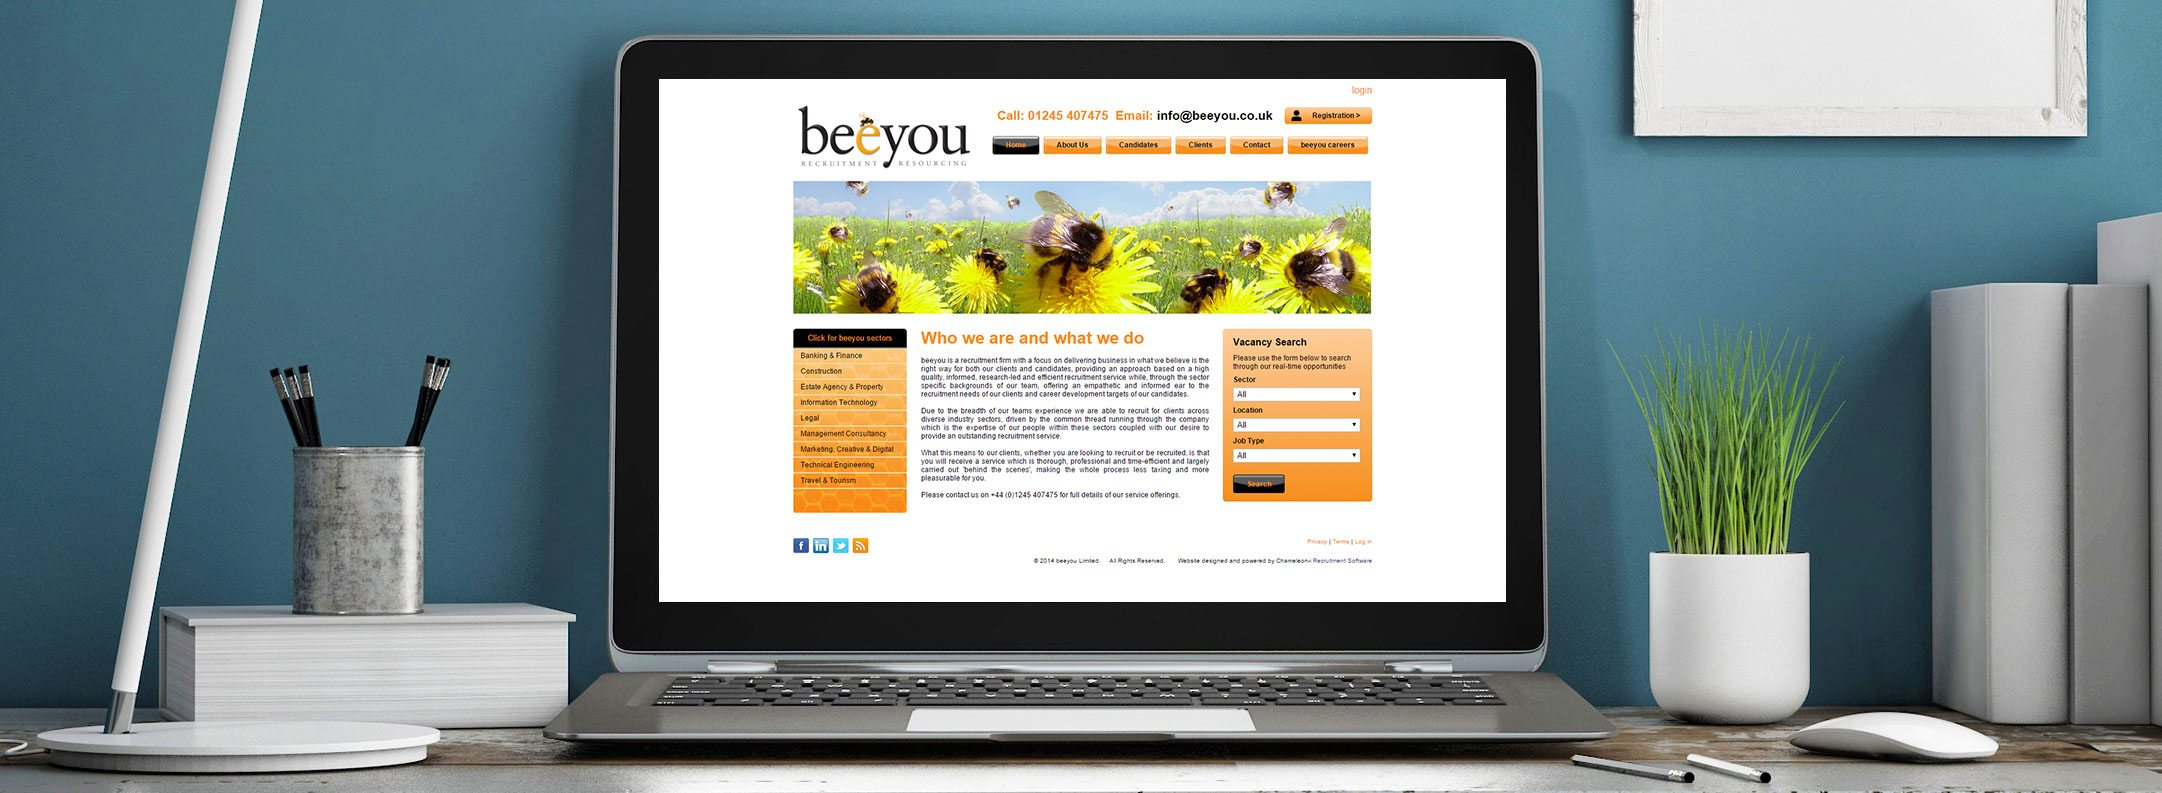 Website-banner-beeyou